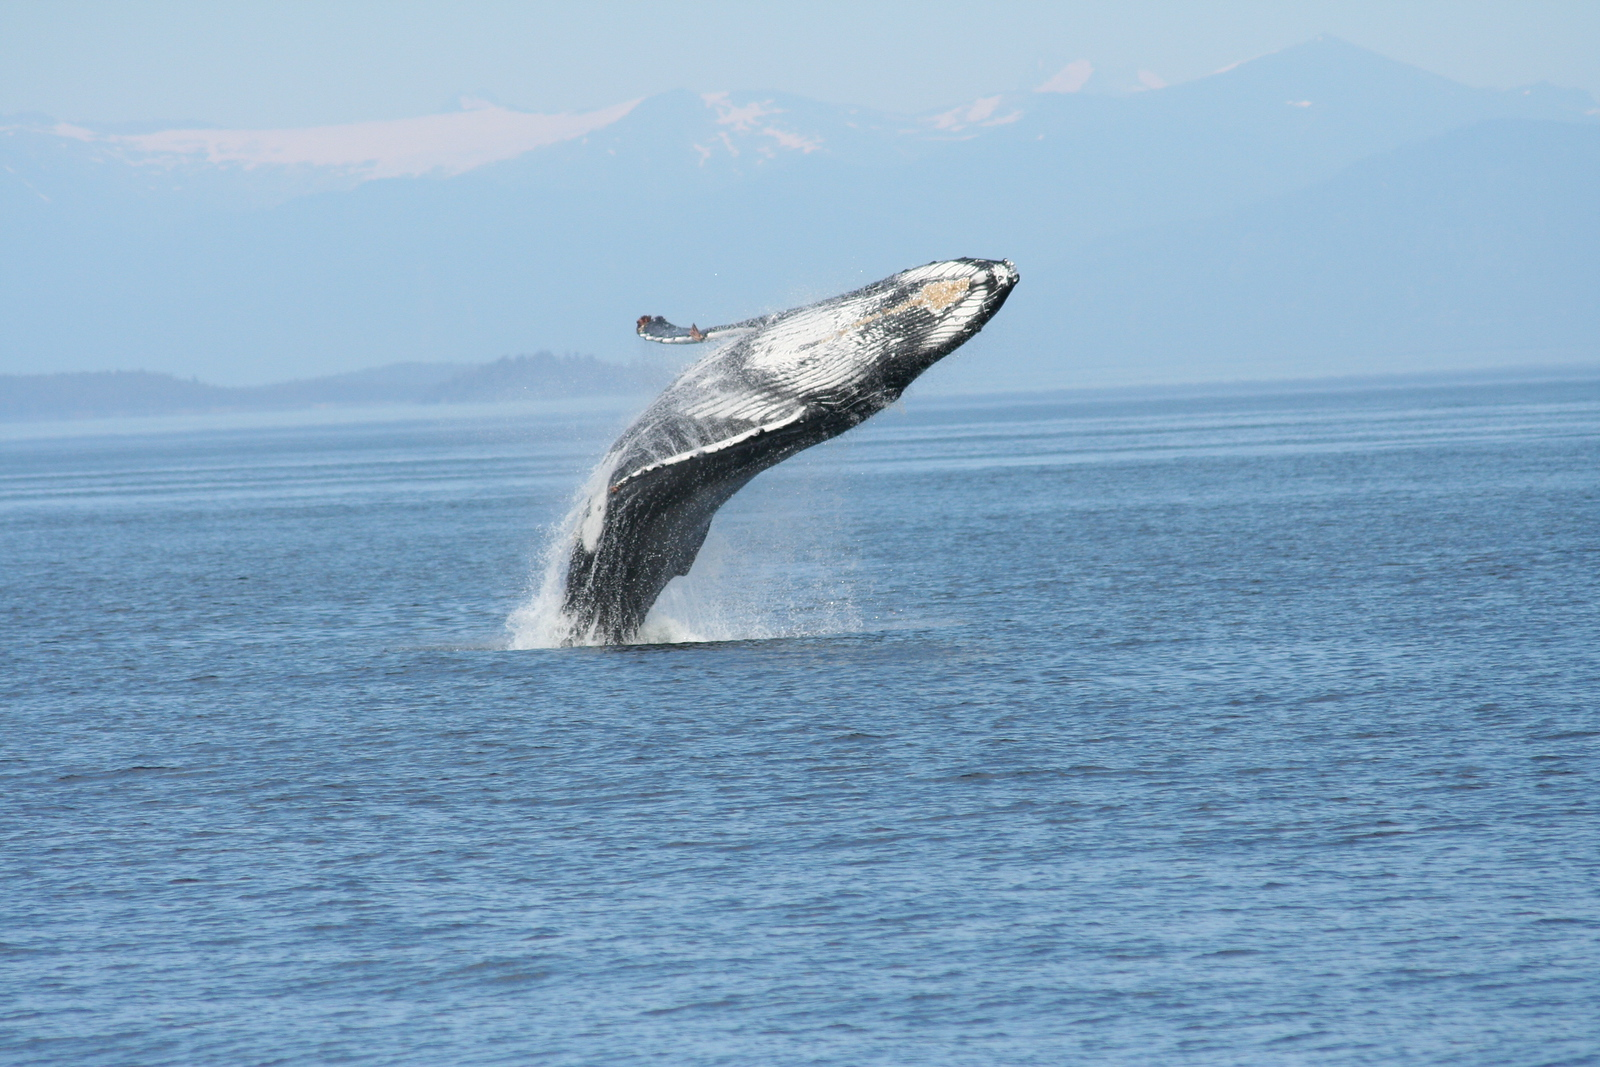 Breaching Humpback whales in Frederick Sound, Alaska